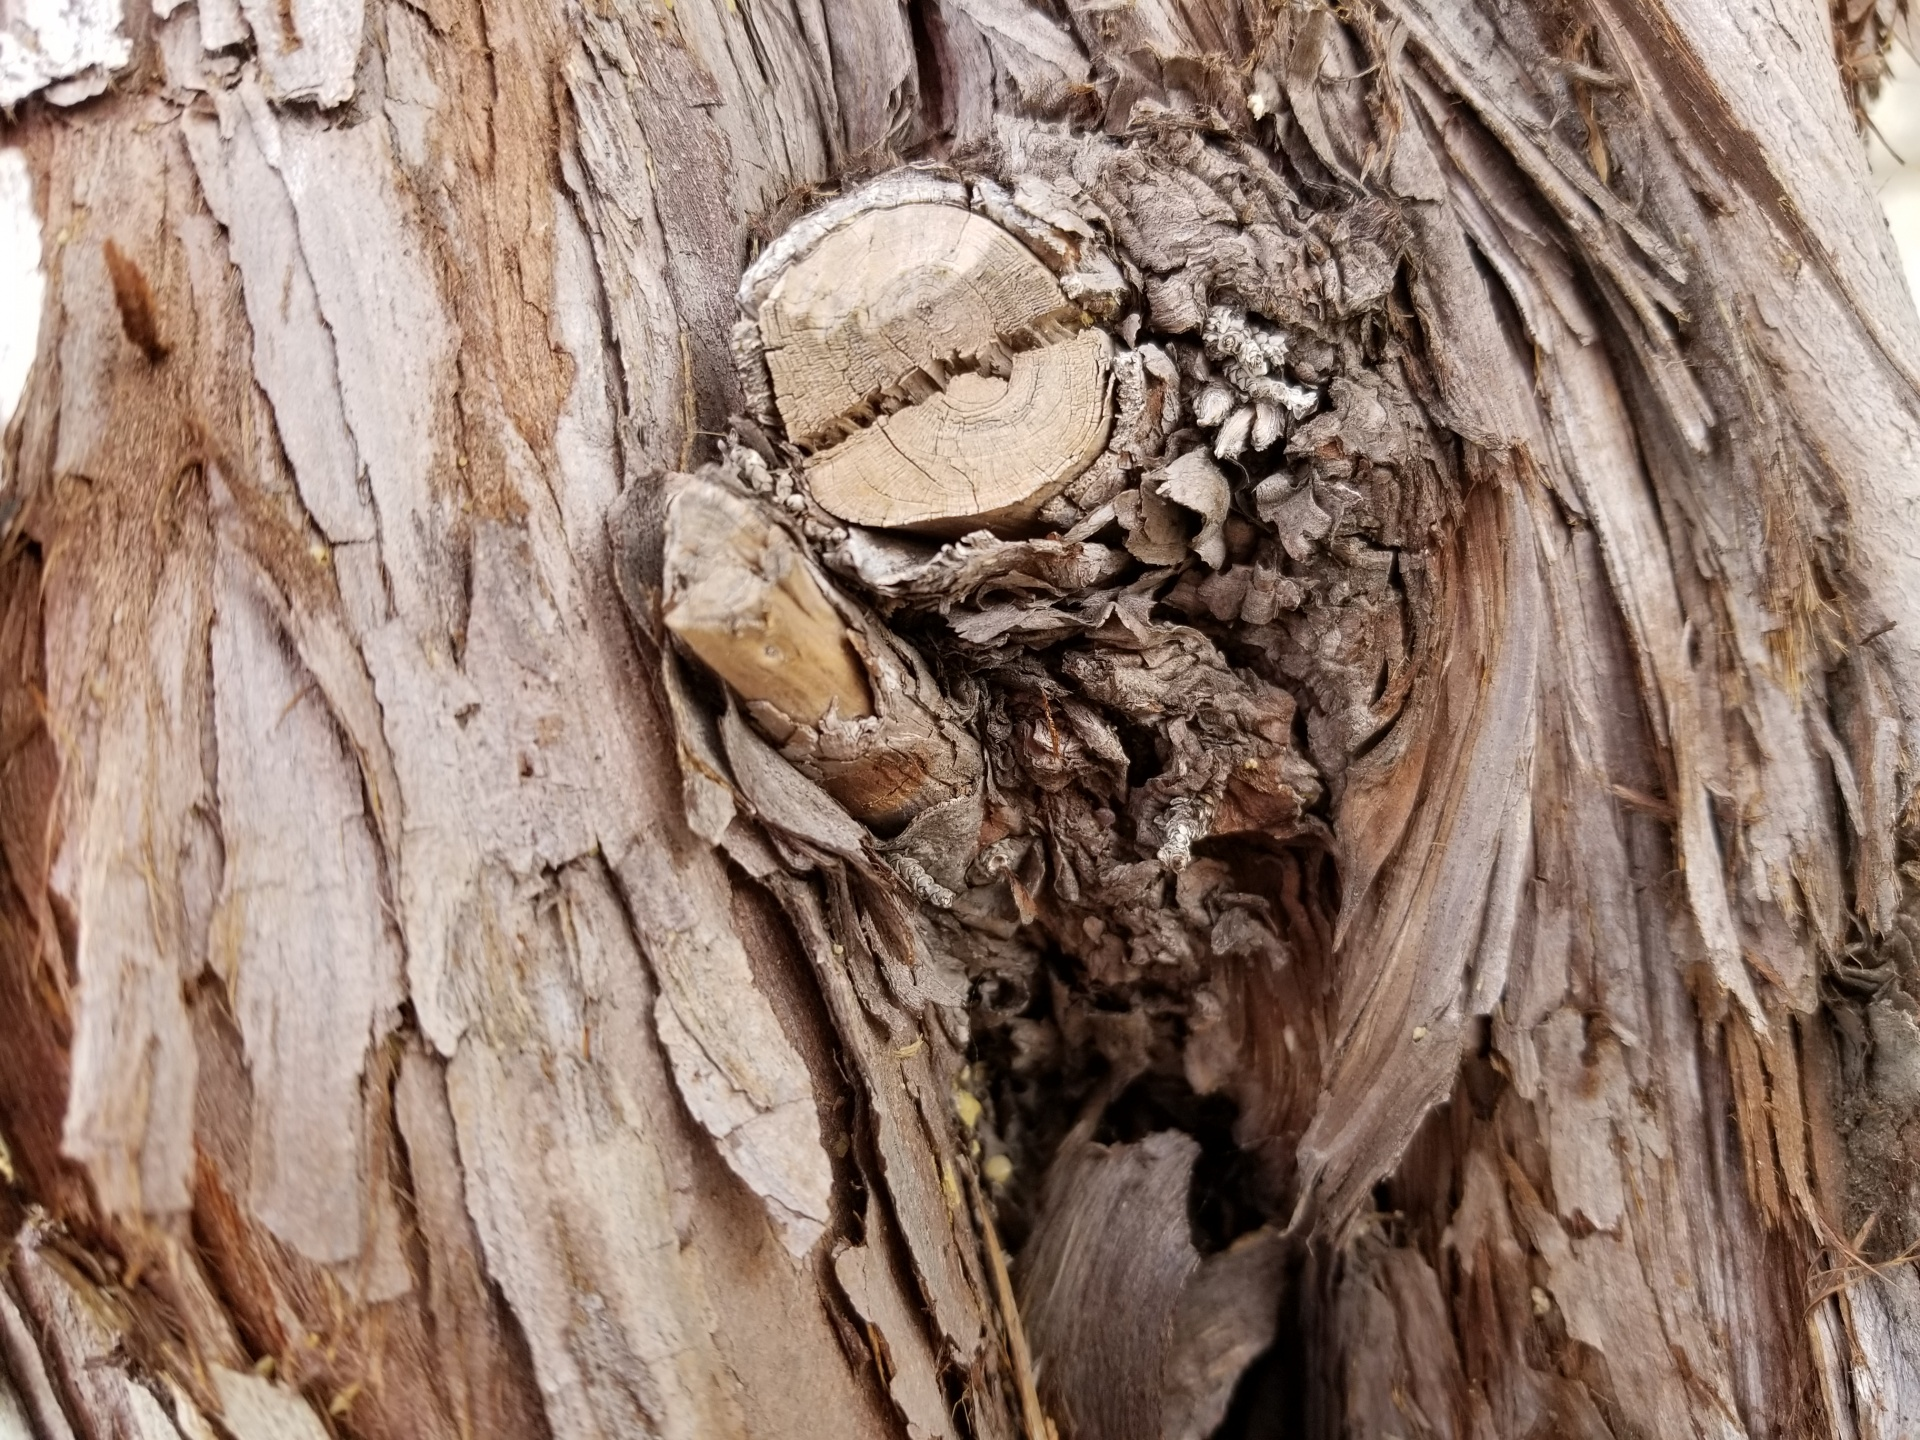 Knot Hole Free Stock Photo - Public Domain Pictures